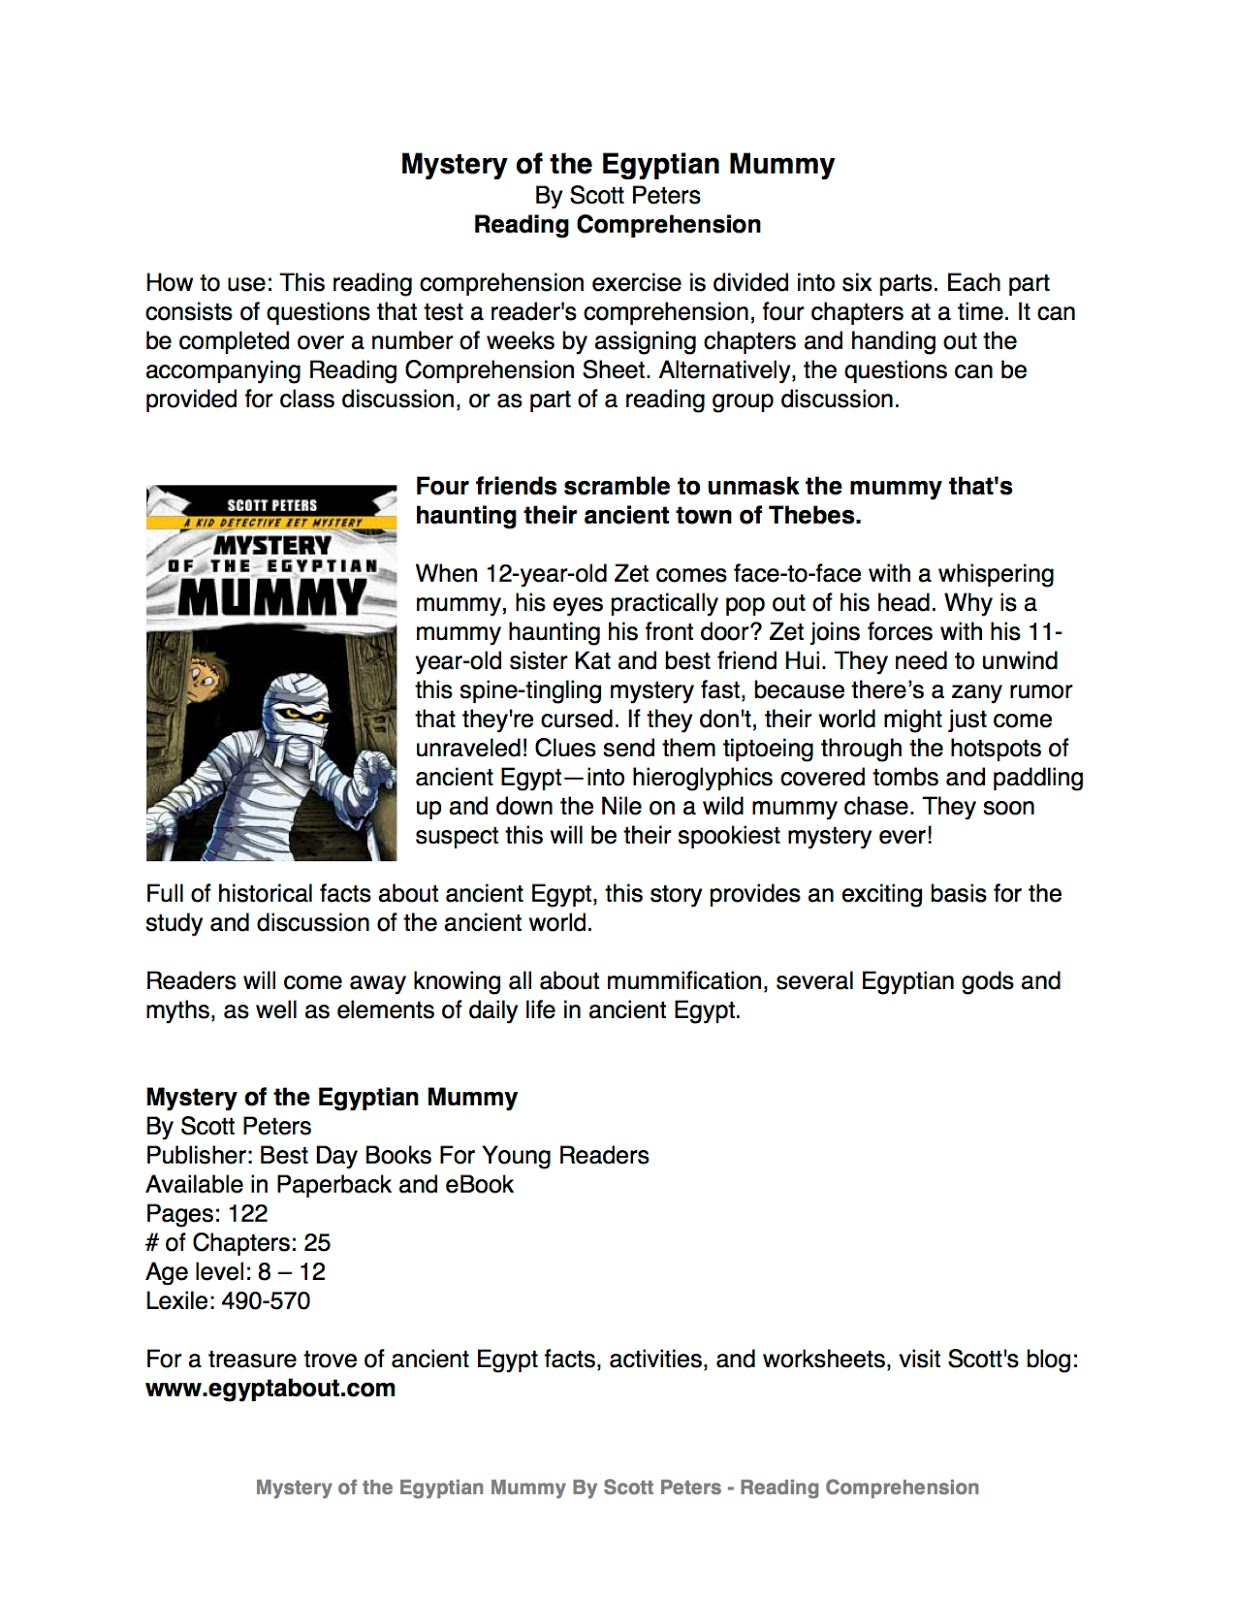 medium resolution of KidsAncientEgypt.com: Mystery of the Egyptian MUMMY: Reading Comprehension